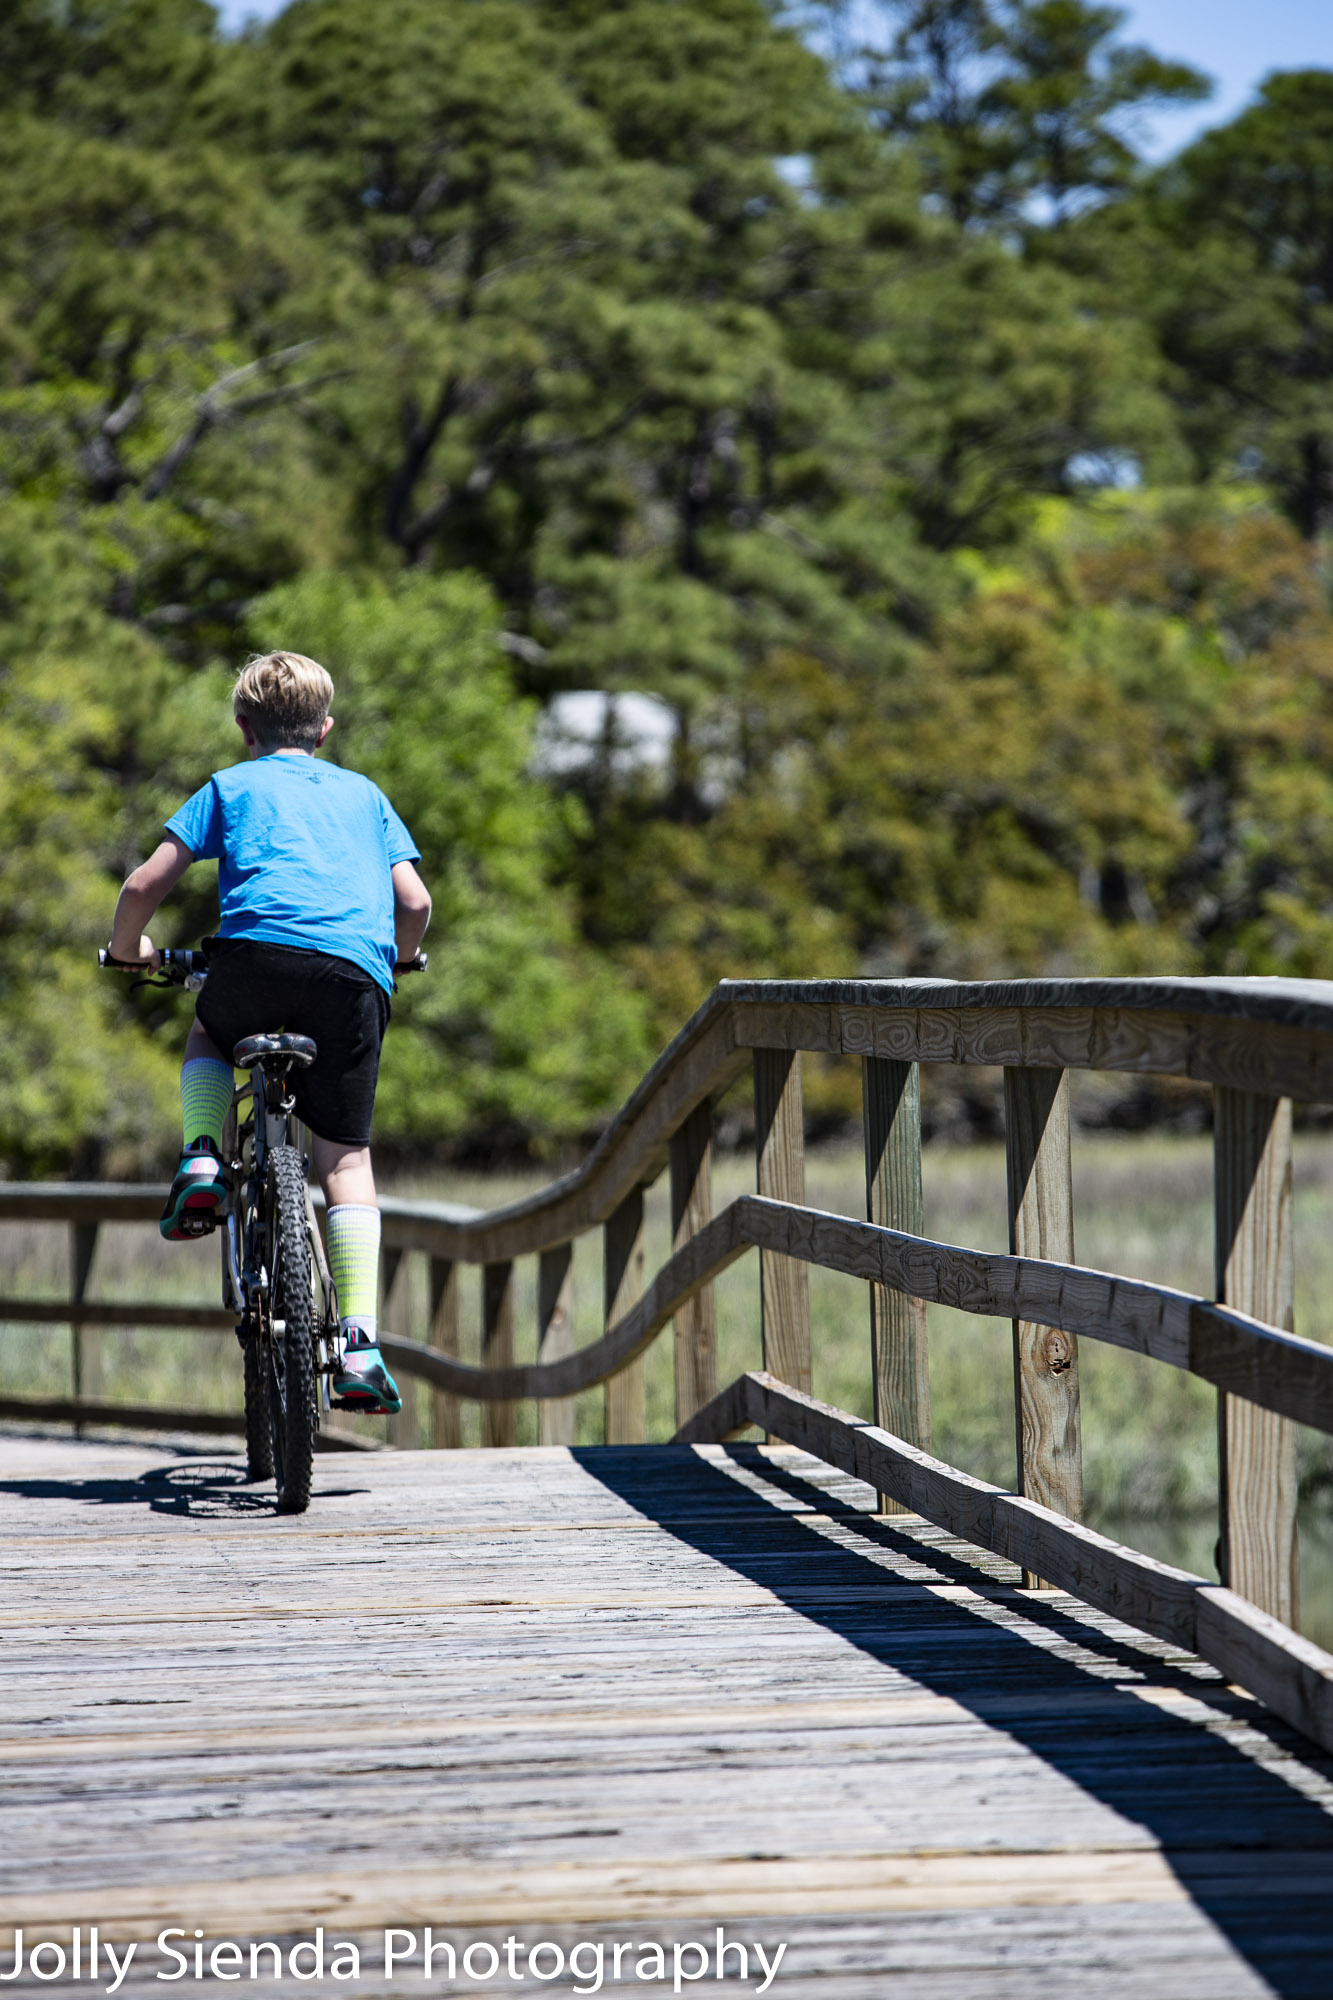 Boy on a bike rides the bridge over the marsh